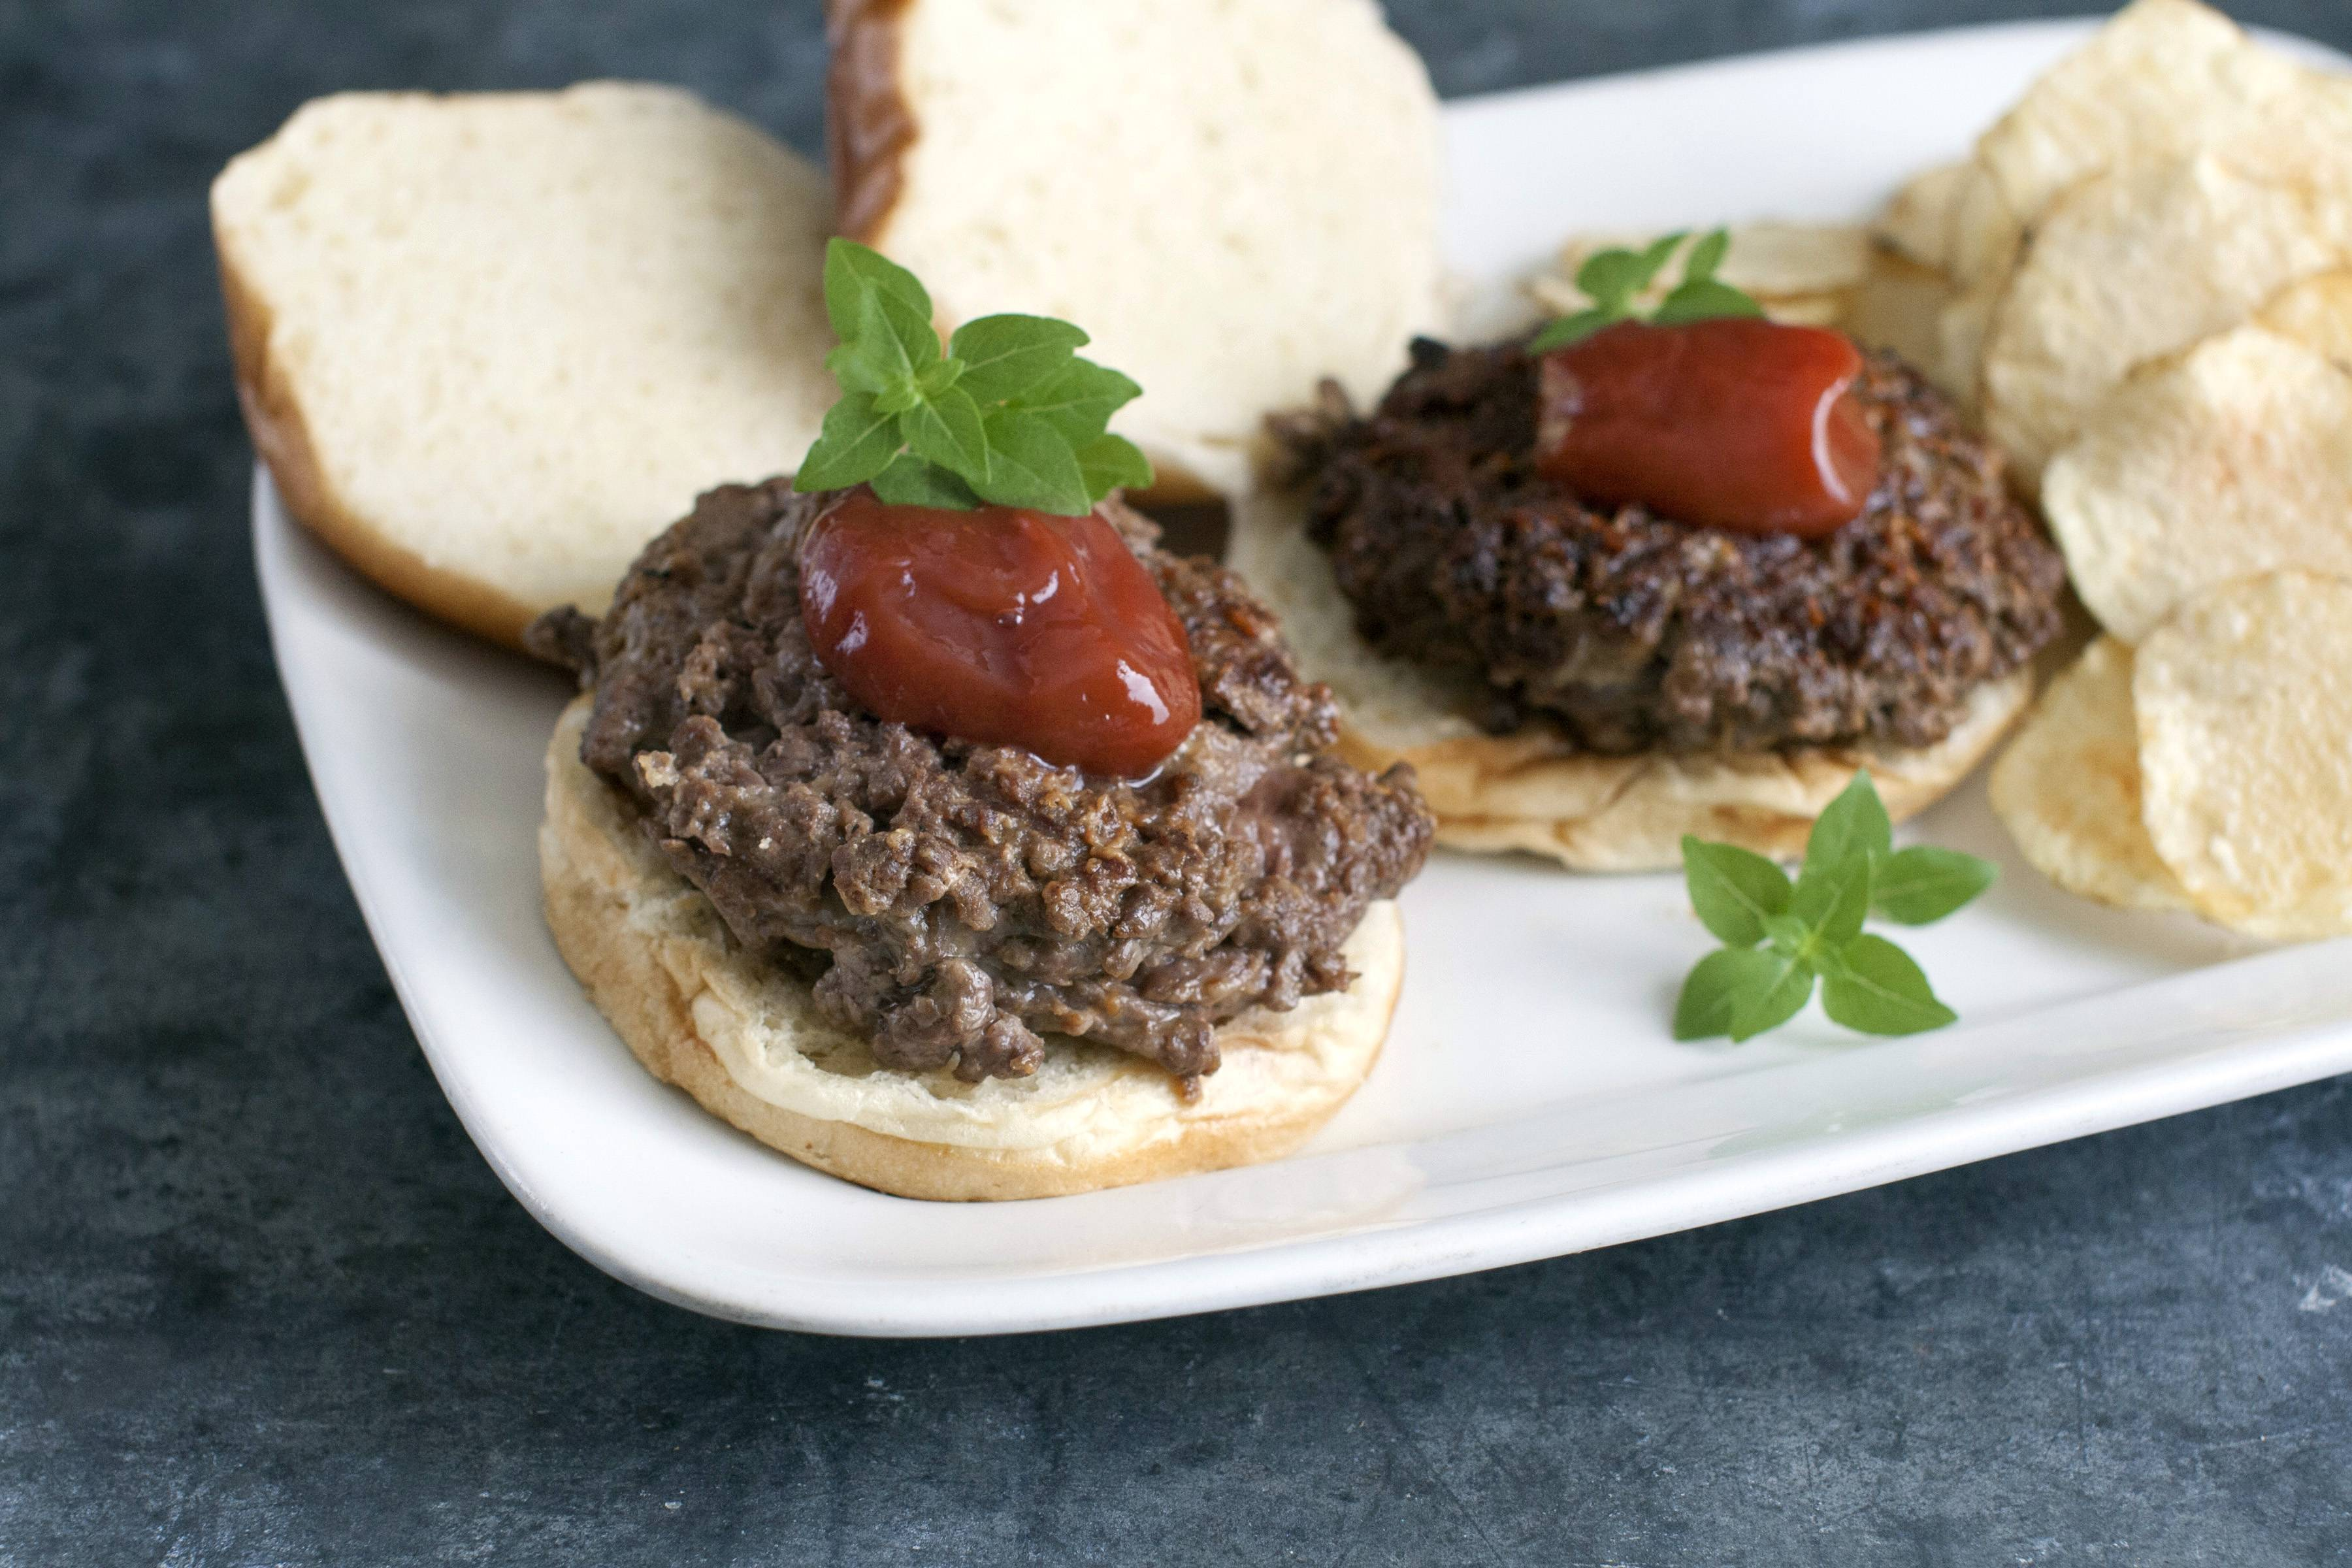 The trick to chopping the beef for your own burgers is to cut it into 1-inch chunks, then freeze it for about 15 minutes until it is just firm. These partially frozen chunks chop perfectly in the processor without becoming overworked.